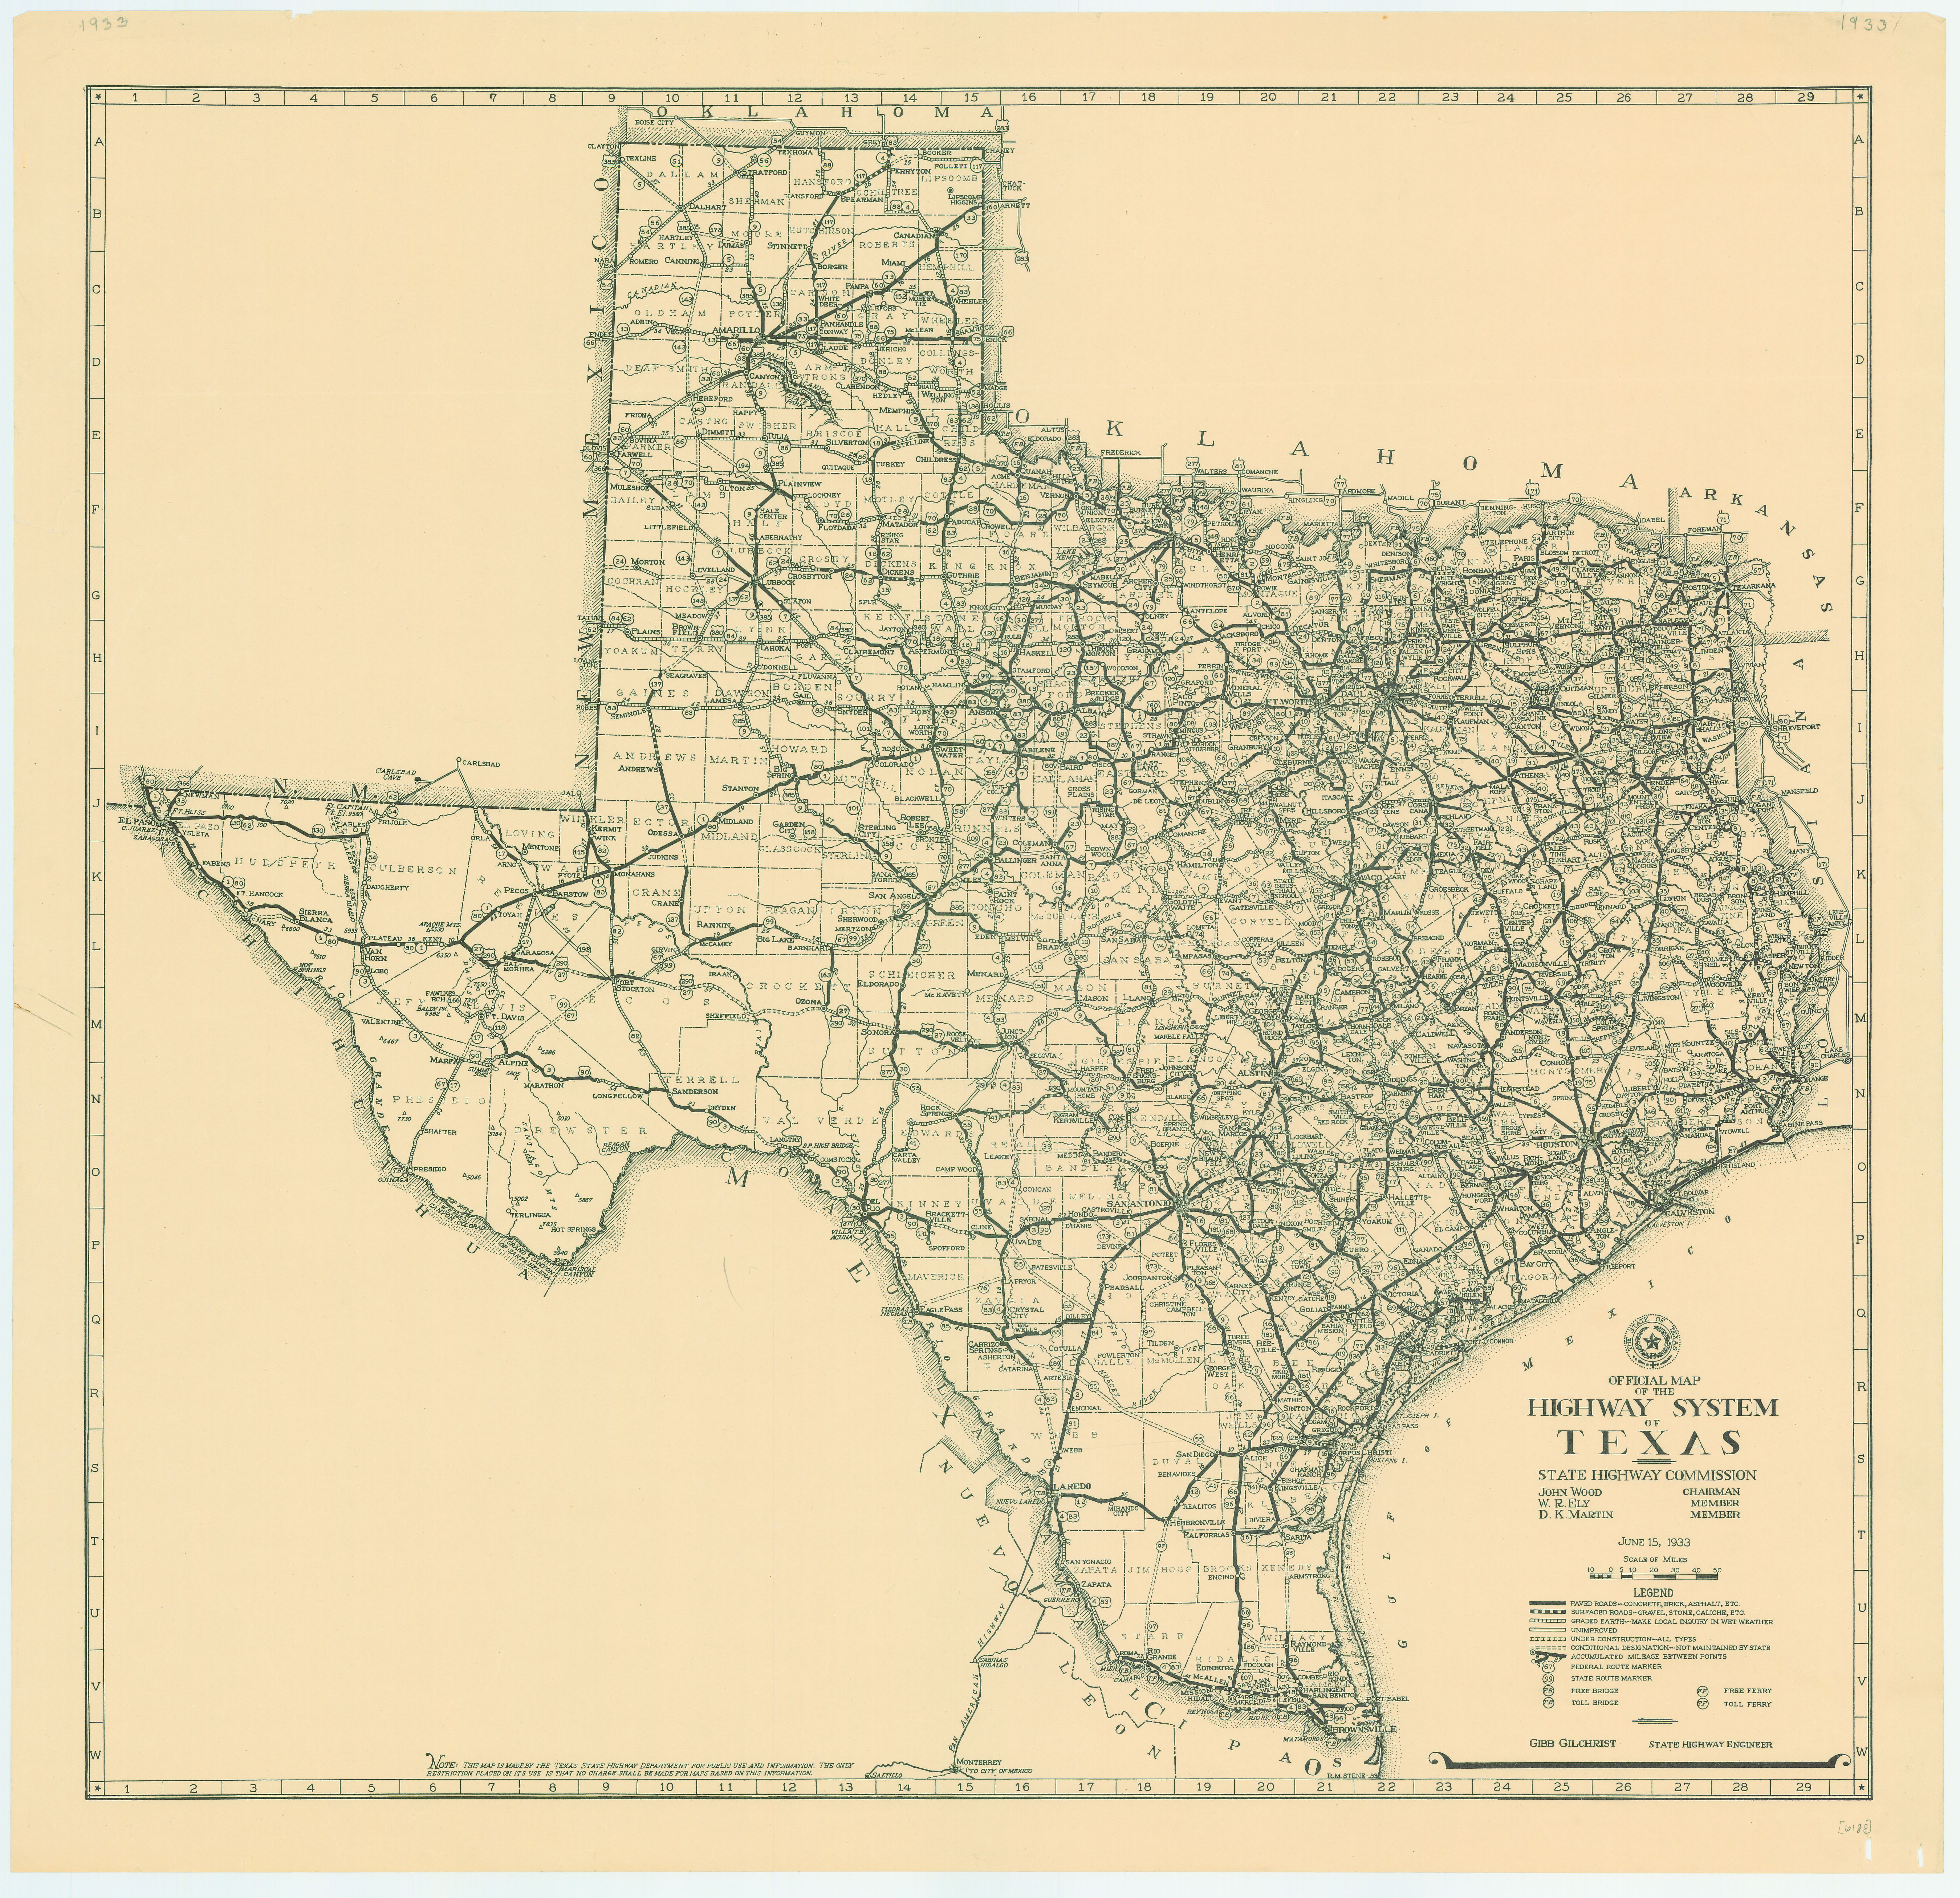 Free Map Of Texas.File 1933 Texas State Highway Map Jpg Wikimedia Commons